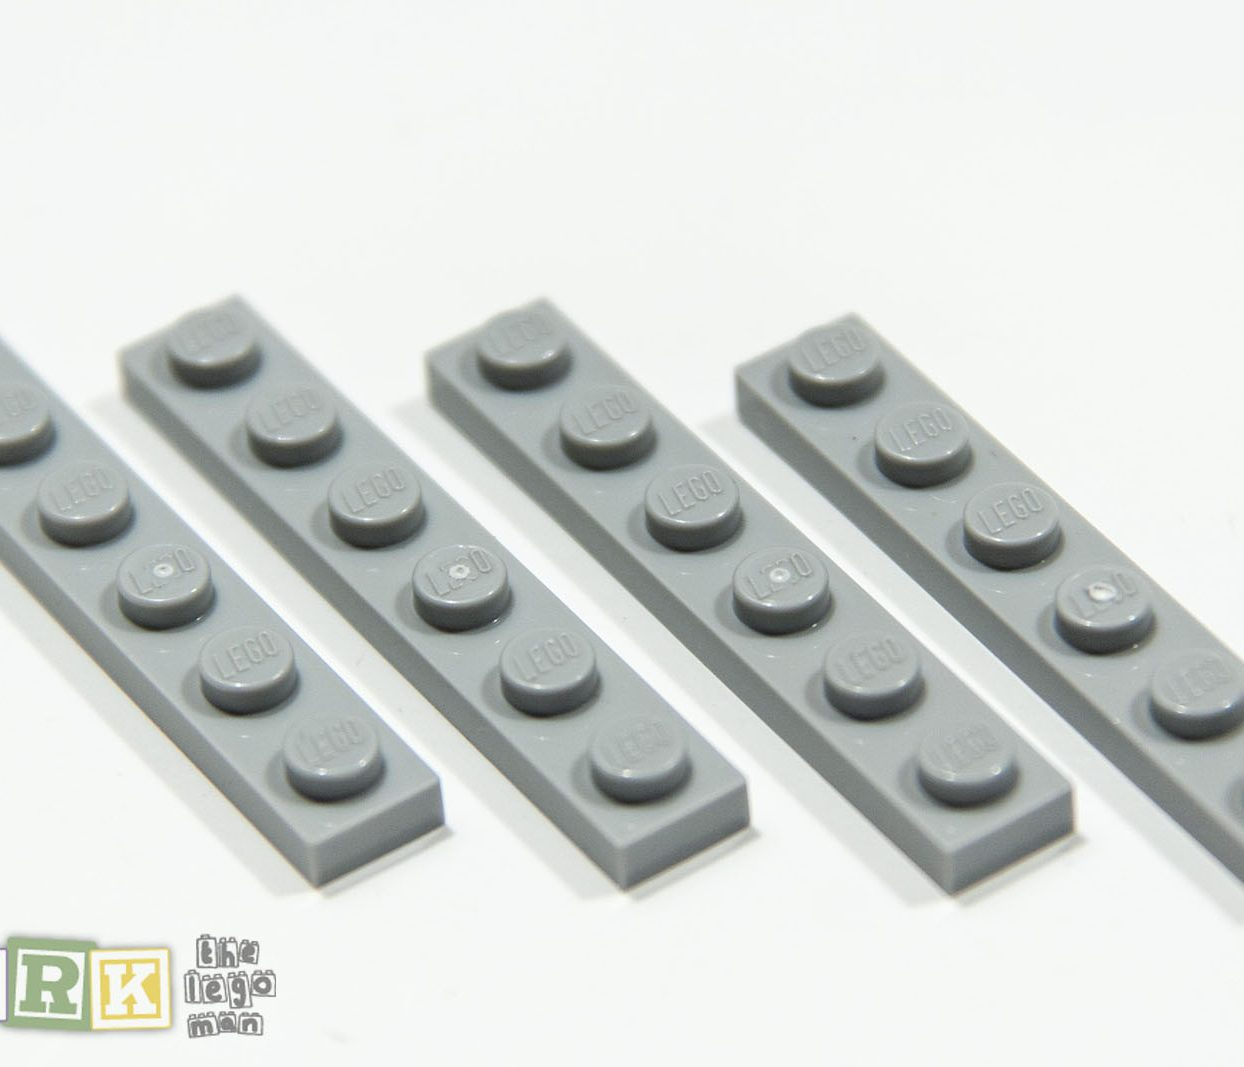 NEW Lego 3666 4x Plate 1x6 4211438